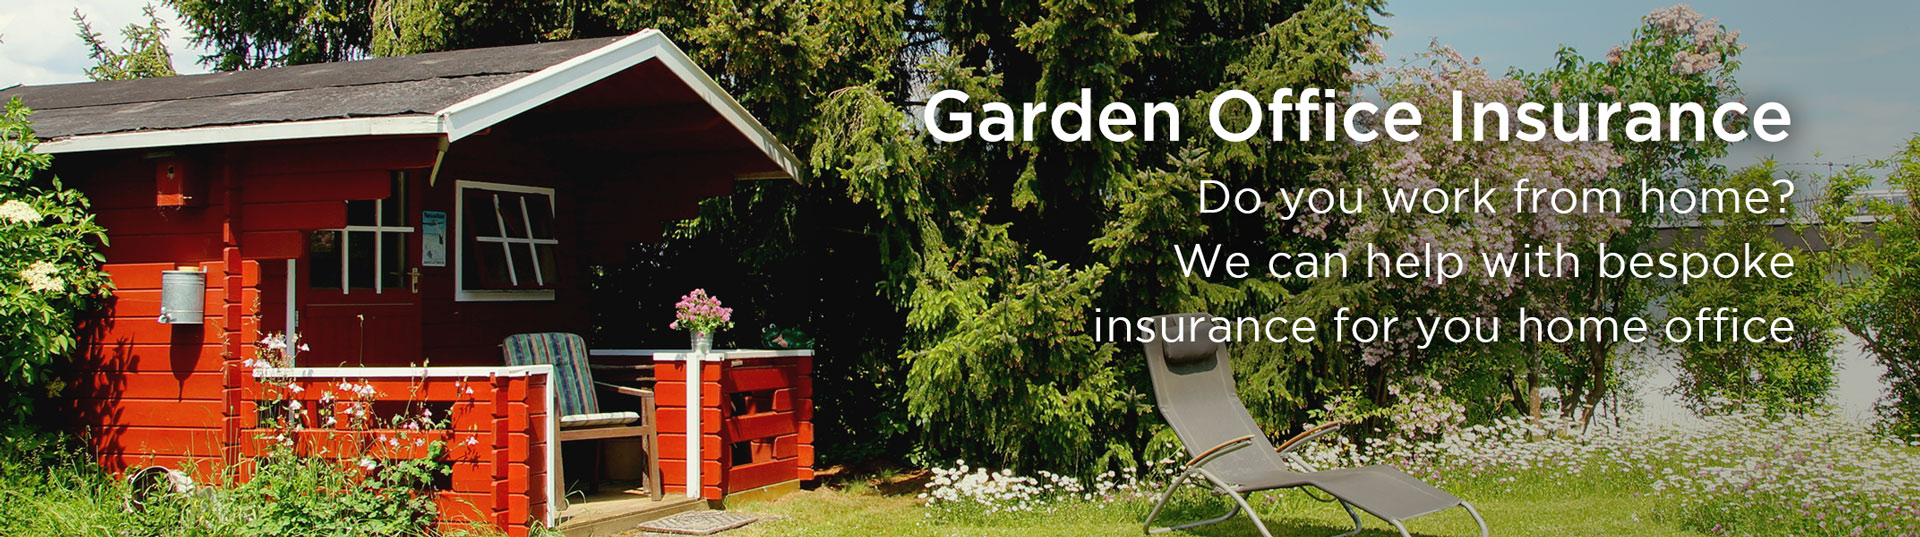 Home garden Office Insurance Banner